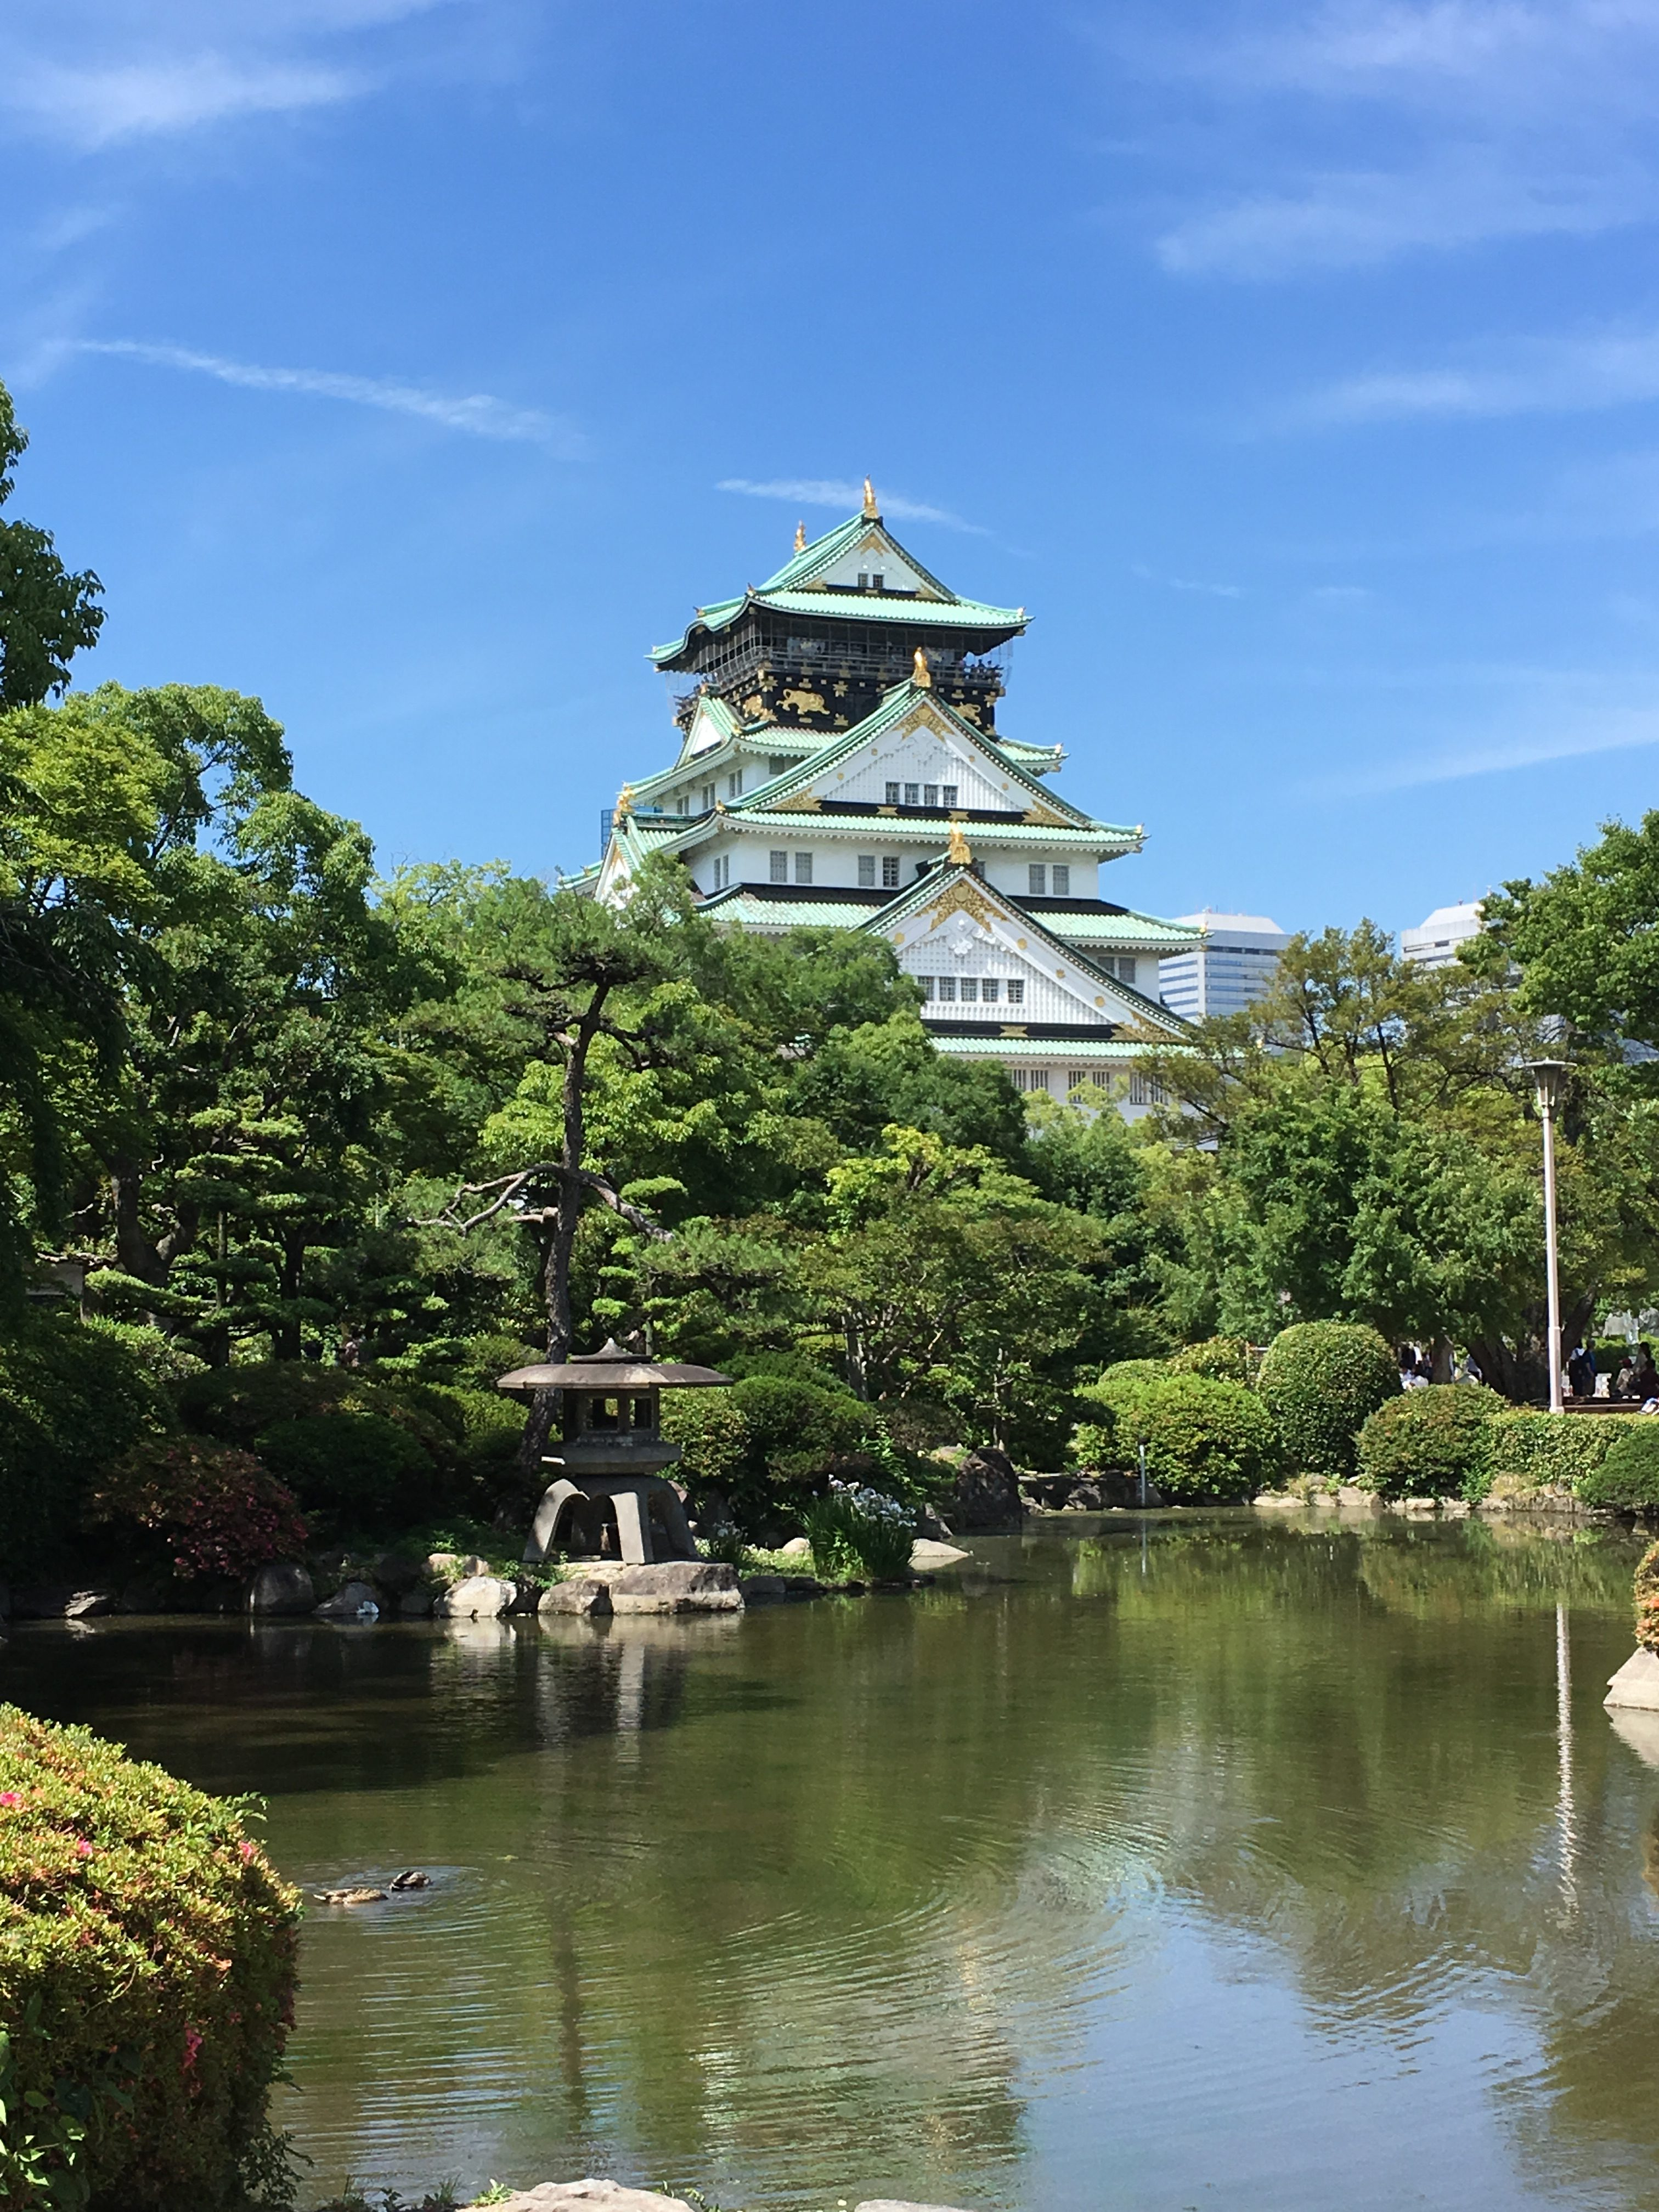 view of Osaka Castle with pond in foreground and Japanese style garden